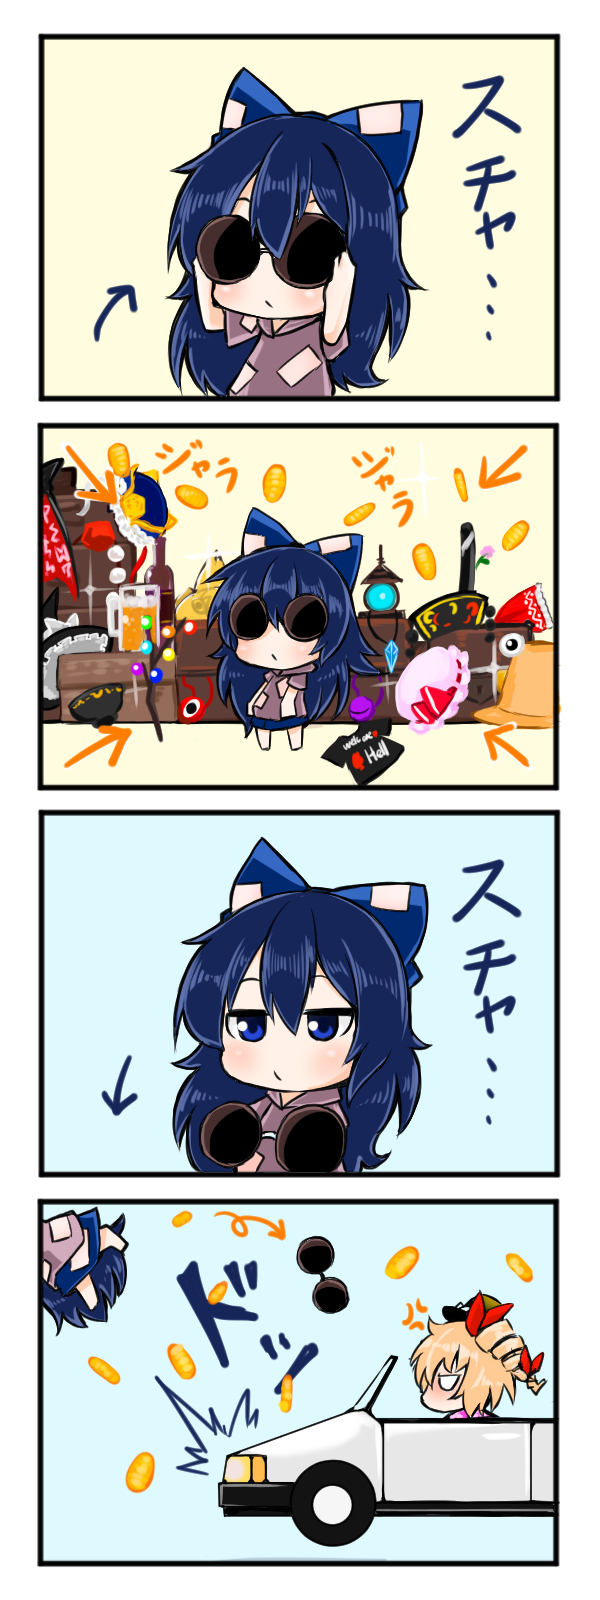 /\/\/\ 2girls 4koma alcohol anger_vein angry barefoot beer beer_mug bishamonten's_pagoda blank_eyes blonde_hair blue_bow blue_eyes blue_hair blue_skirt bow bowl branch car chibi coin comic cup debt directional_arrow drill_hair drinking_glass driving expressionless eyeball ground_vehicle hair_between_eyes hair_bow hat highres hood hood_down hoodie ja_komurashi jeweled_branch_of_hourai jewelry long_hair motor_vehicle multiple_girls pendant sheath shirt short_sleeves siblings silent_comic sisters skirt standing sunglasses t-shirt top_hat touhou tsurime twin_drills vehicle witch_hat yorigami_jo'on yorigami_shion